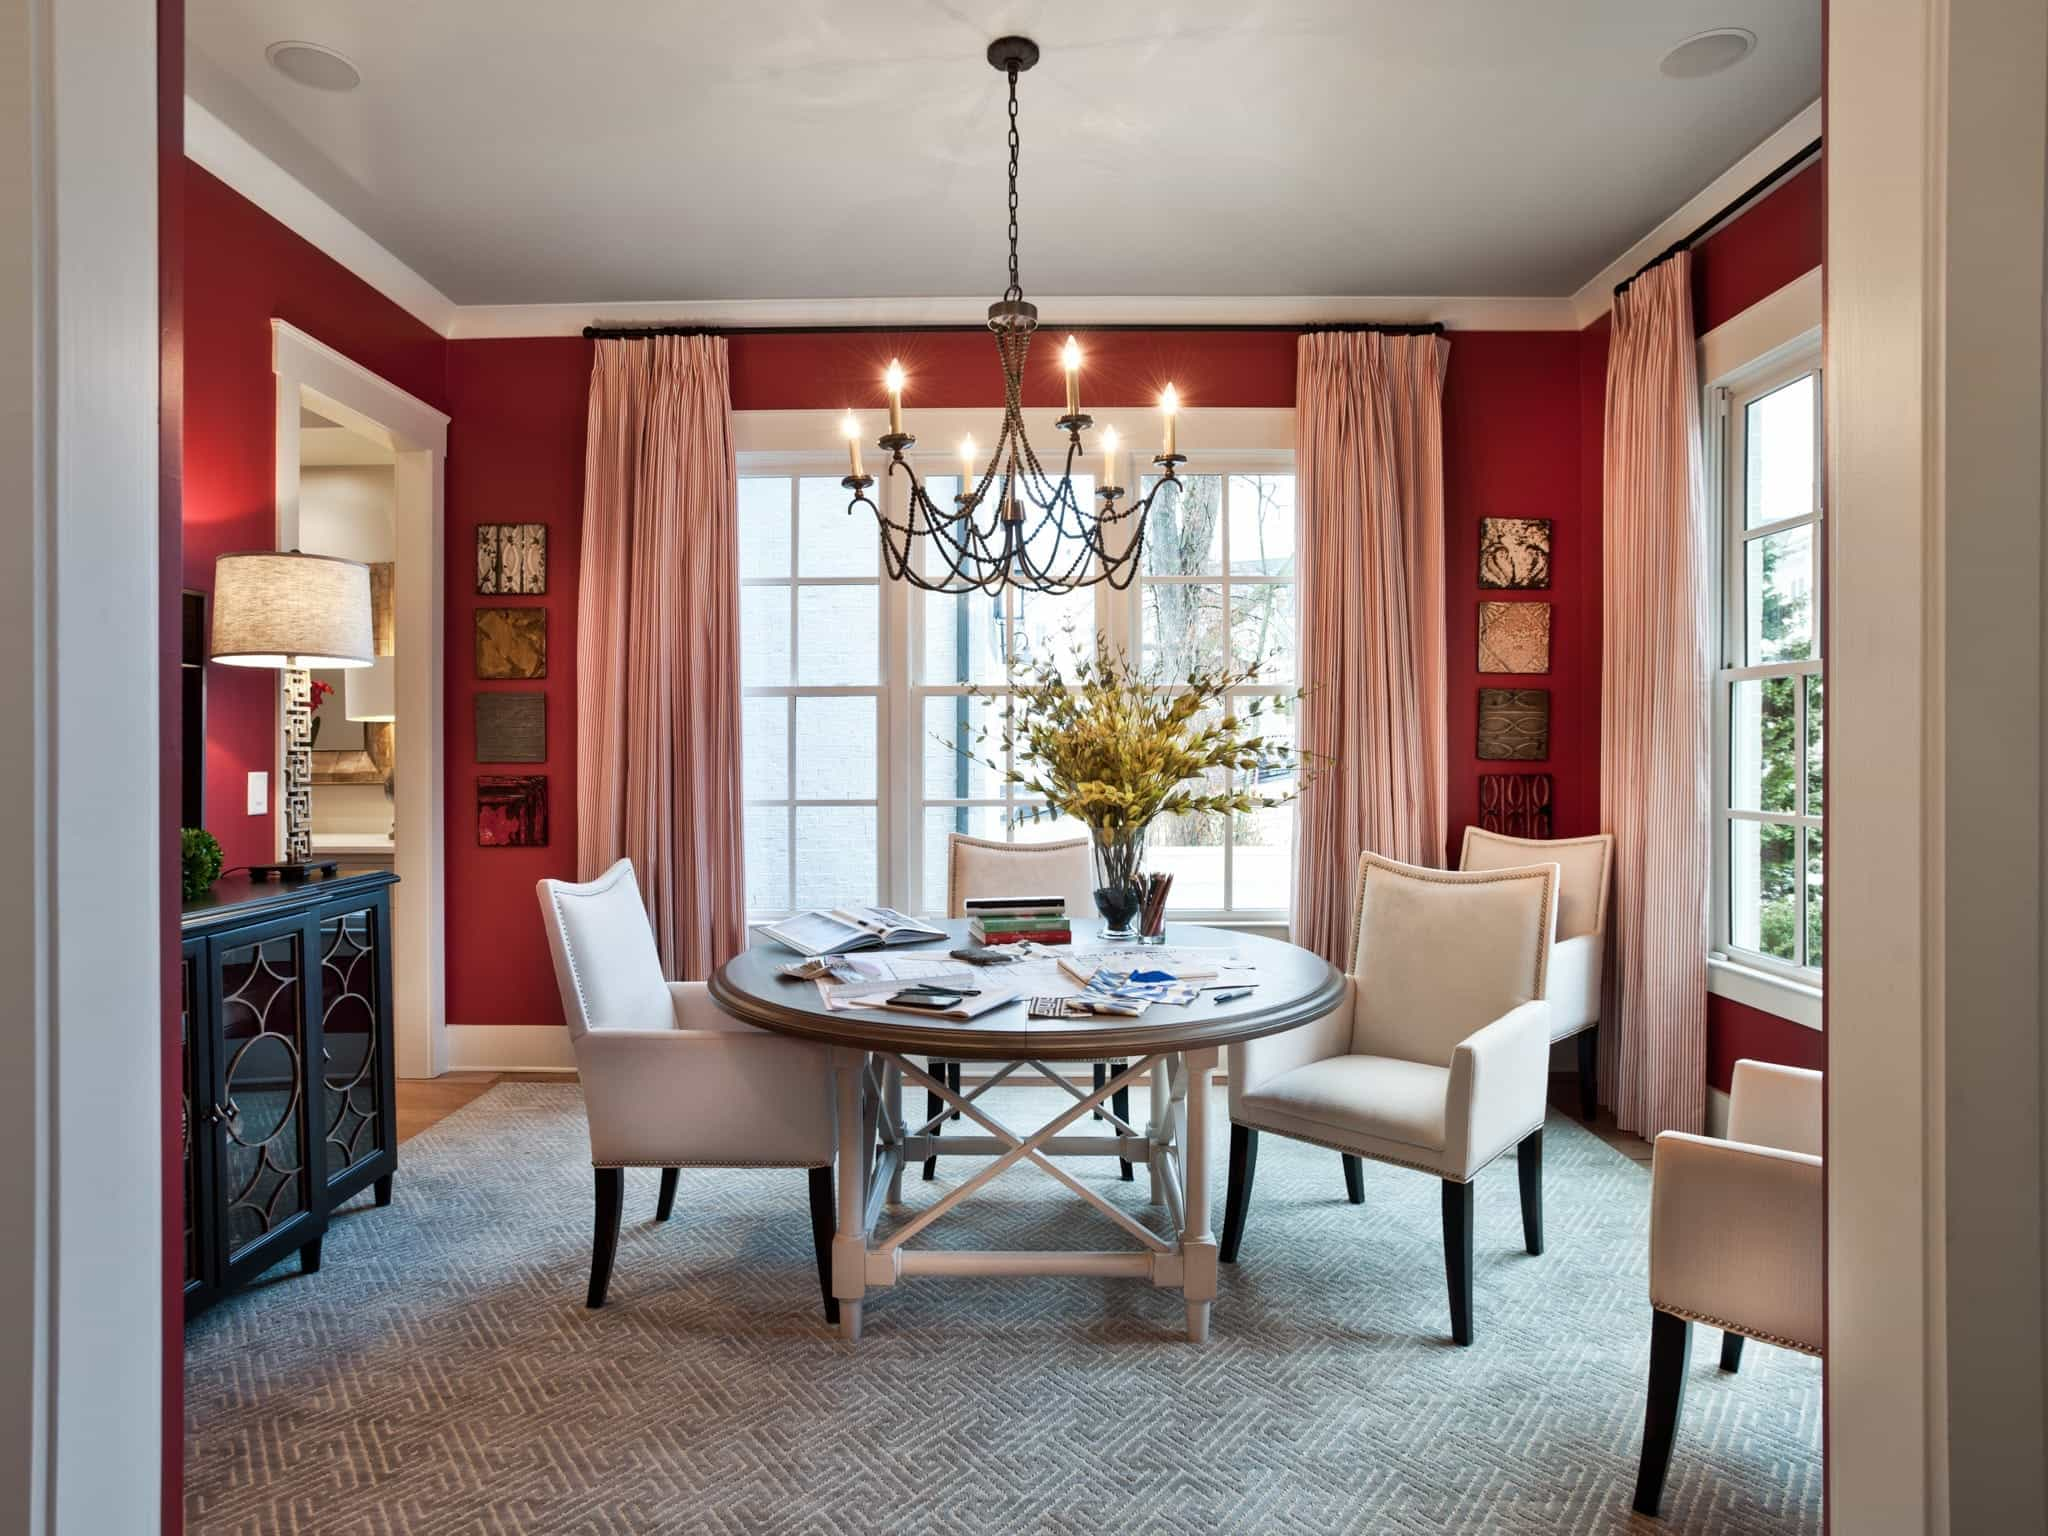 Red Romantic Dining Room Interior With White Upholstered Chairs (View 6 of 21)